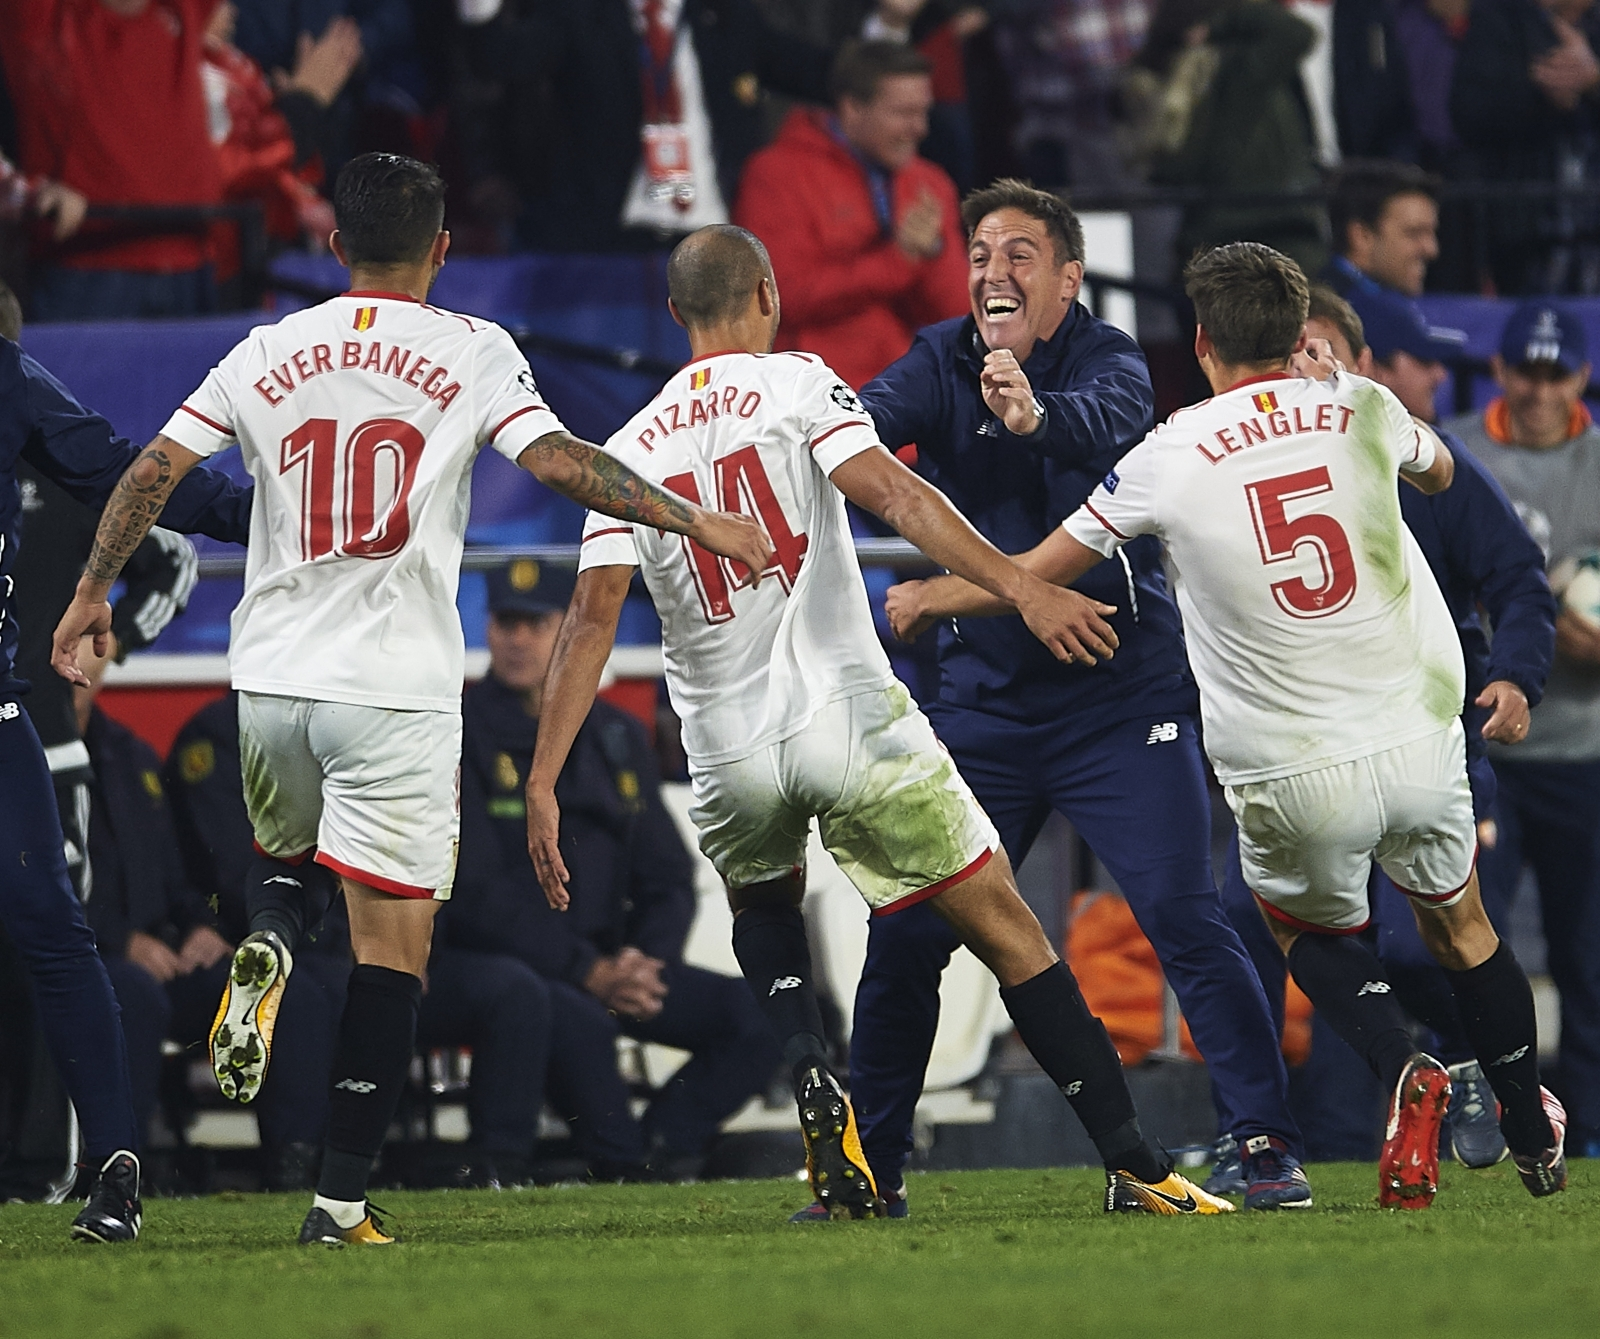 We had to rely on personal pride - Berizzo praises Sevilla´s stunning comeback